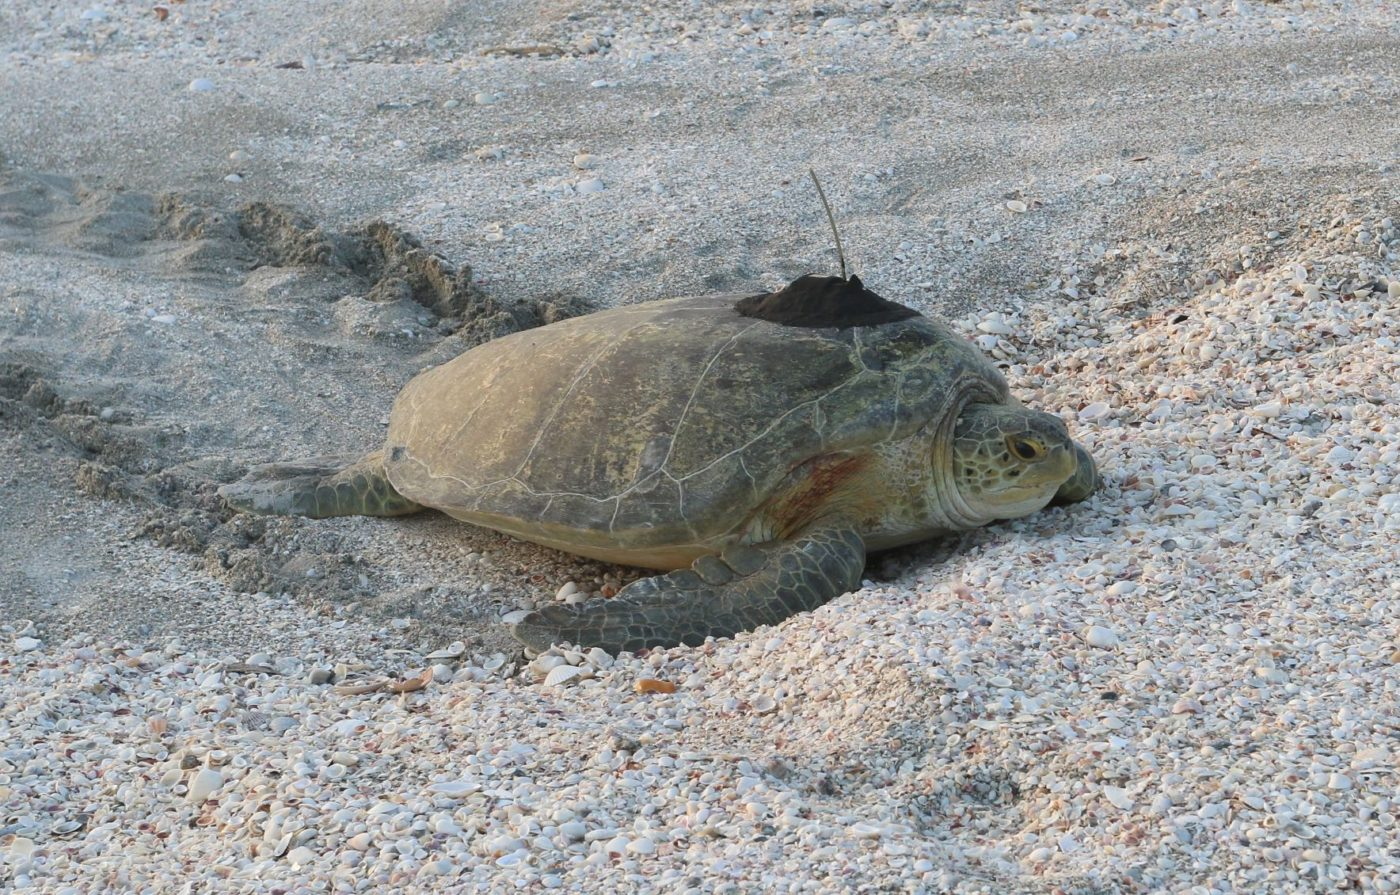 Green sea turtle with a satellite tag returning to the Gulf of Mexico